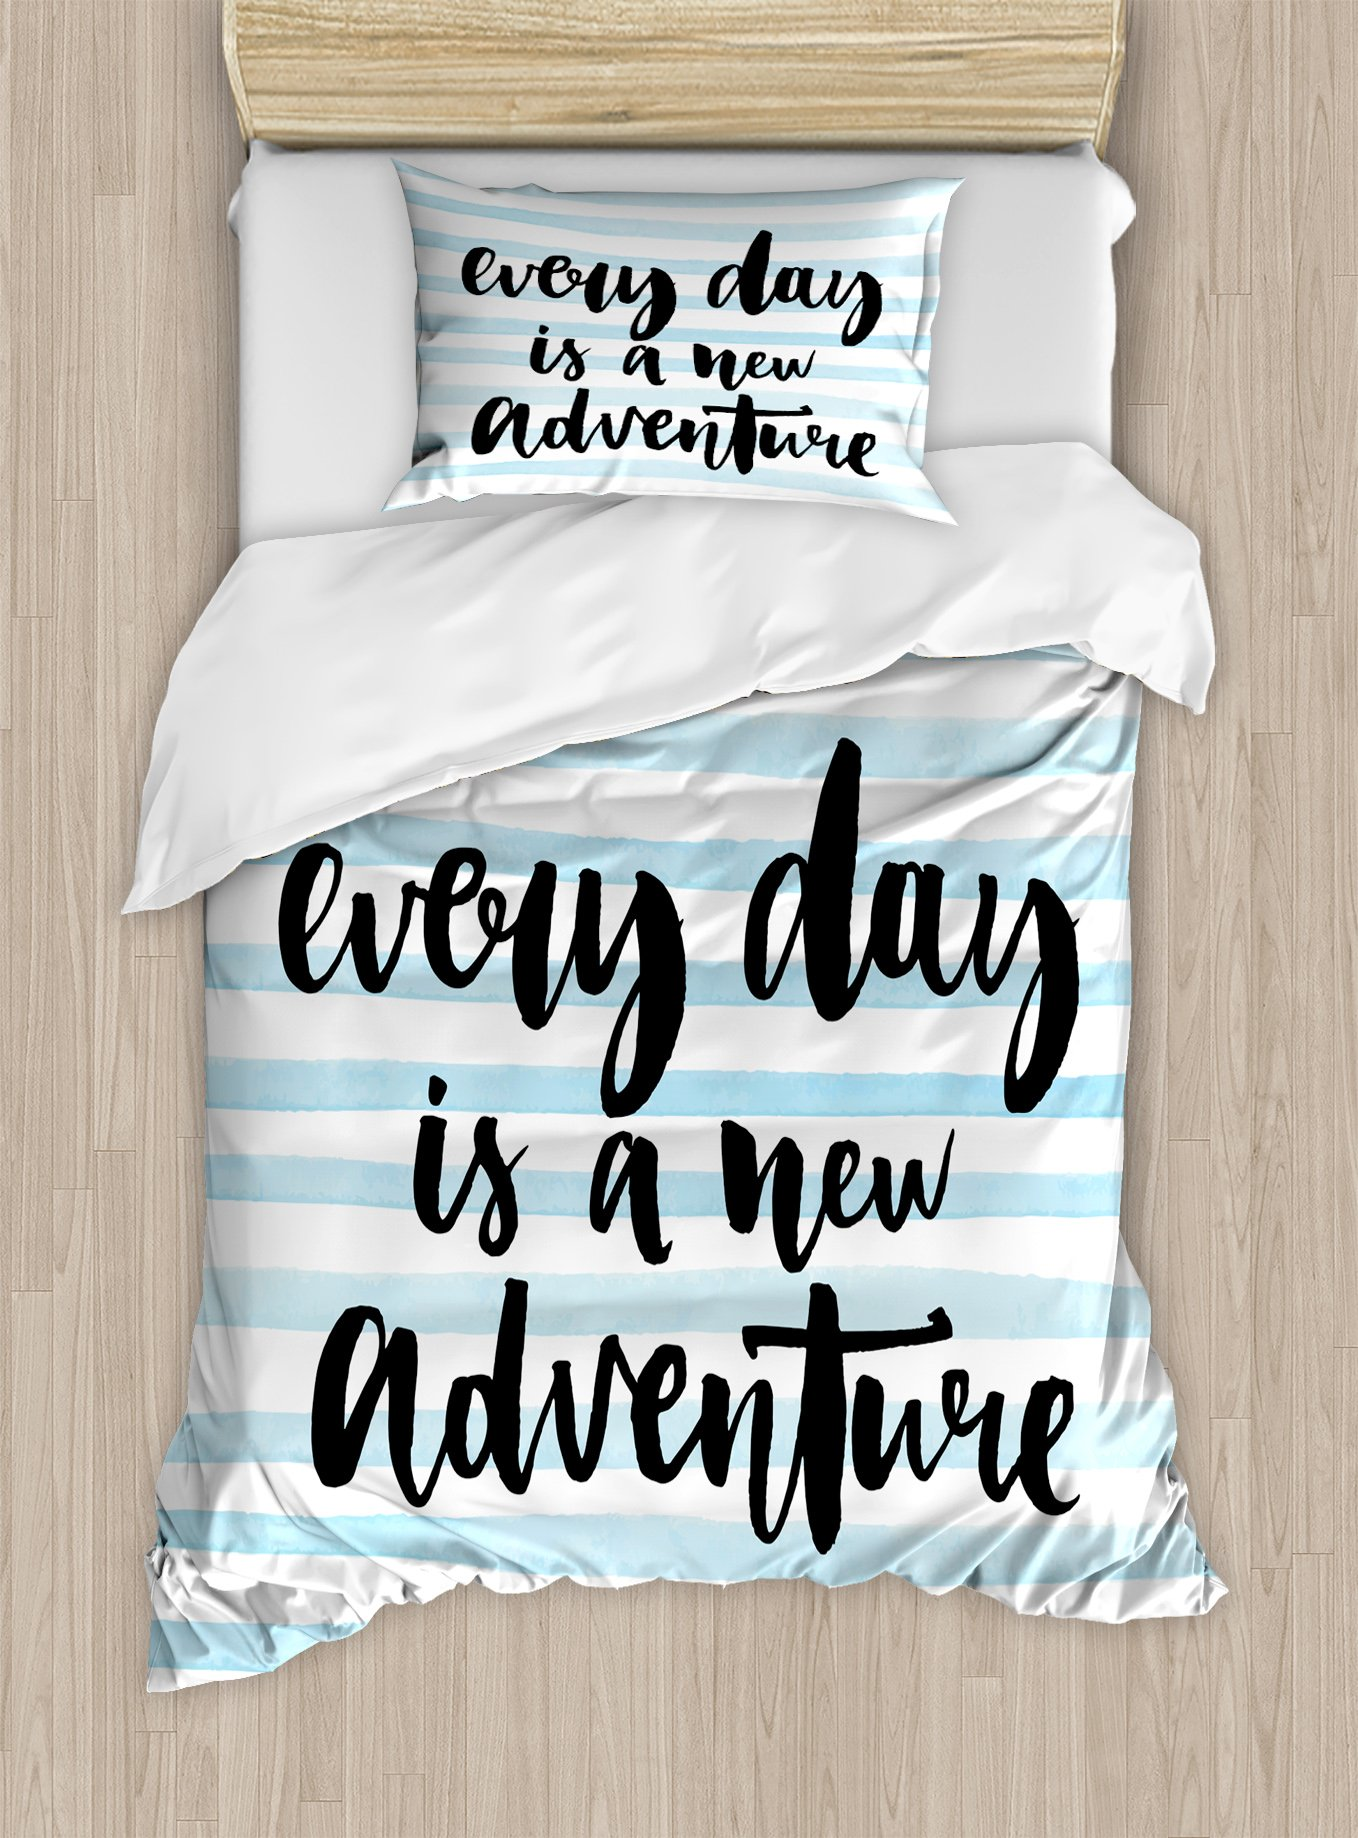 Ambesonne Adventure Duvet Cover Set Twin Size, Every Day is a New Adventure Quote Inspirational Things About Life Artwork, Decorative 2 Piece Bedding Set with 1 Pillow Sham, Baby Blue Black by Ambesonne